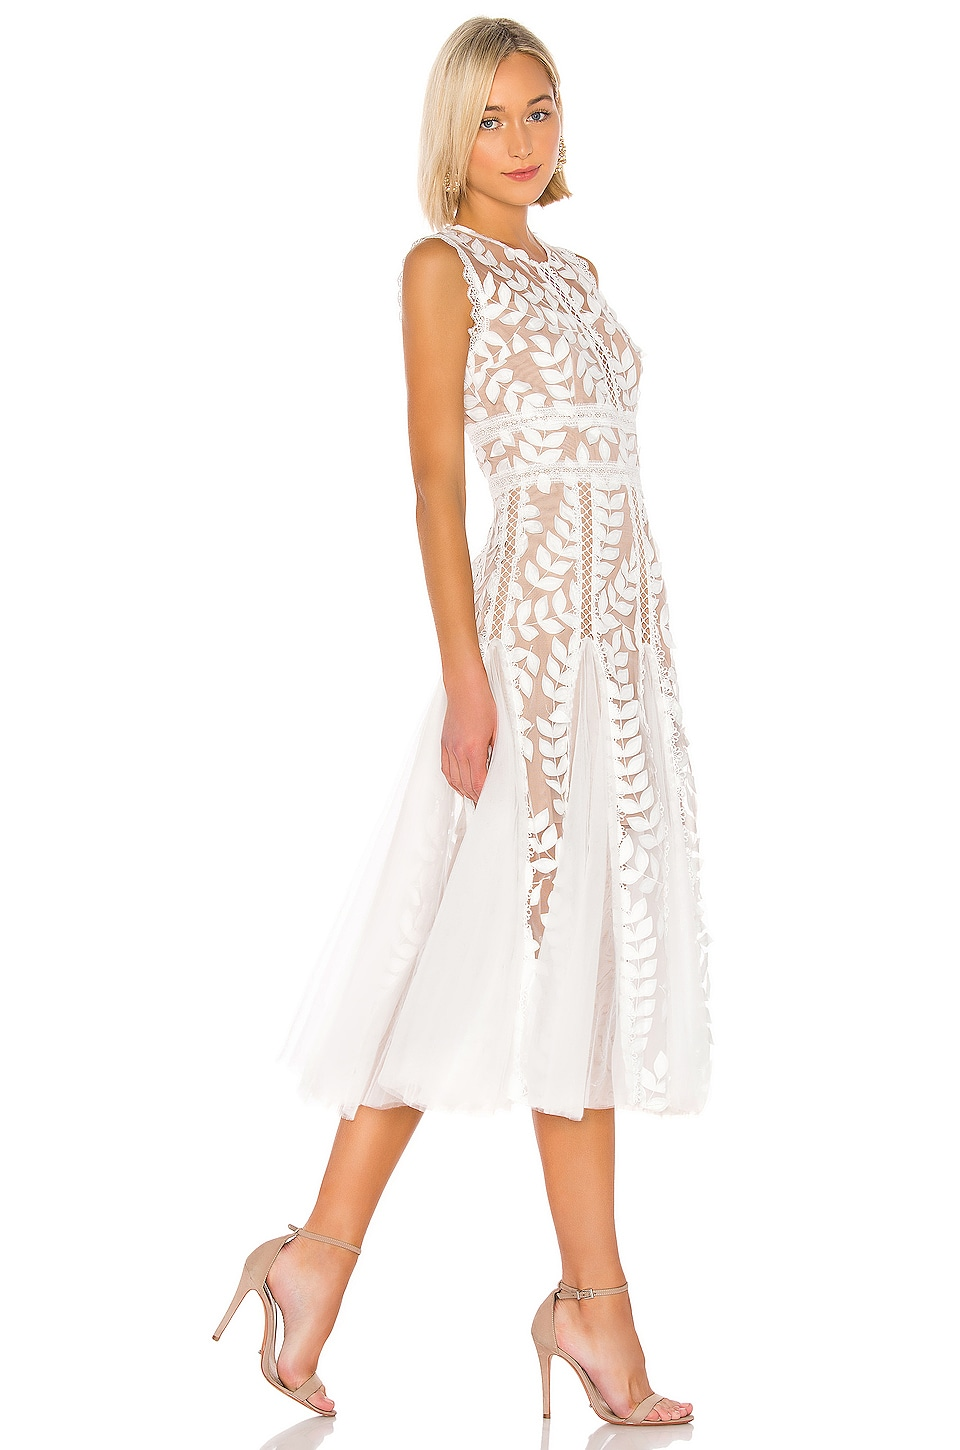 Saba Blanc Midi Dress, view 2, click to view large image.